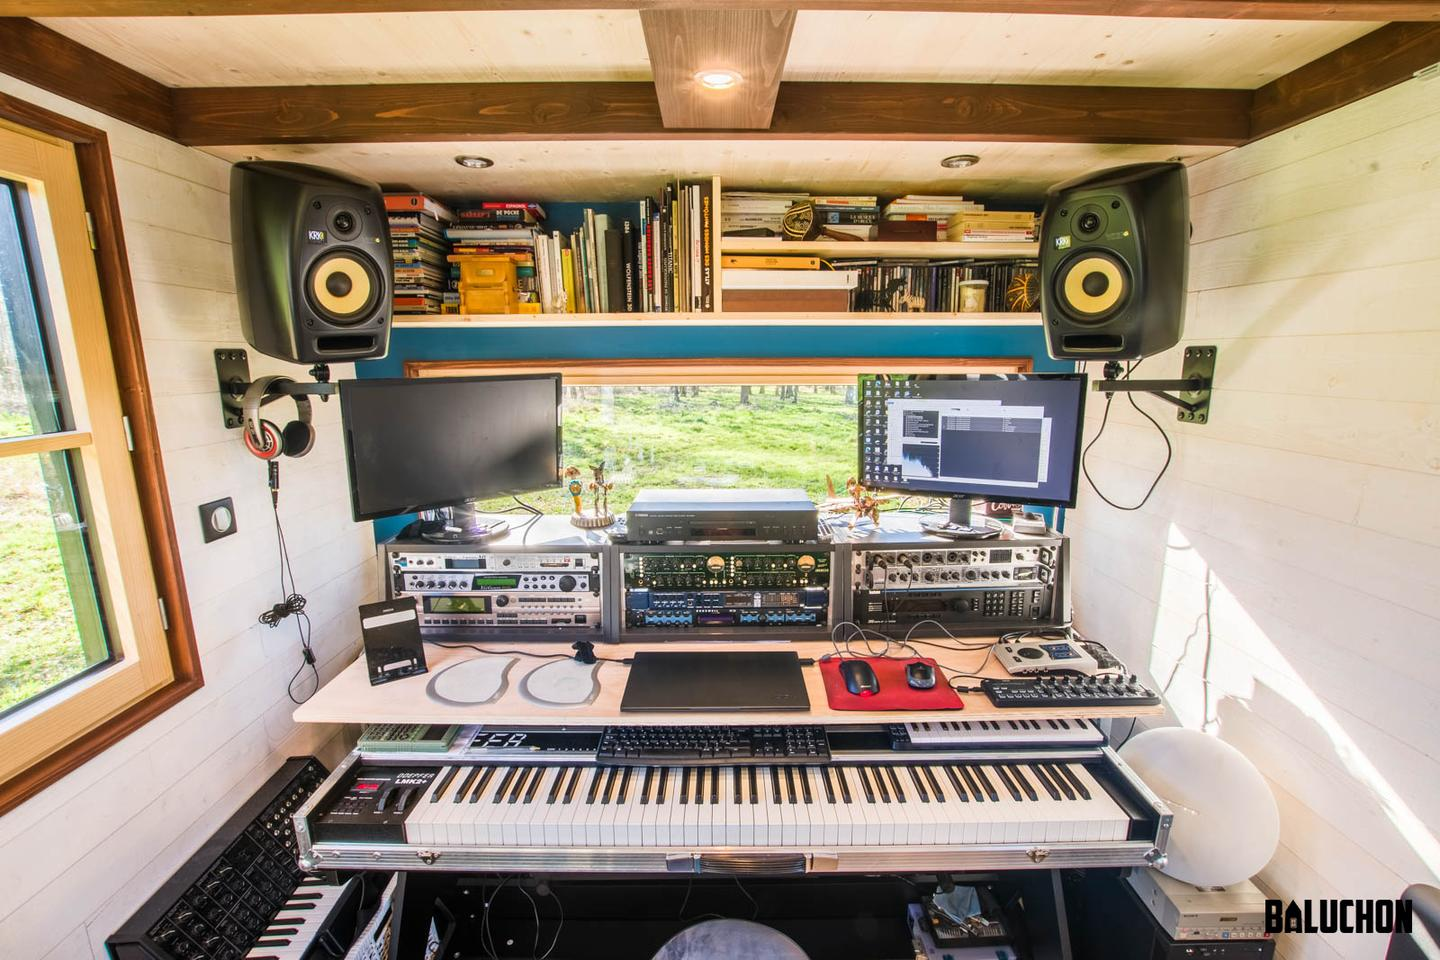 Tiny House Rhapsodie includes a home music studio setup in the living room